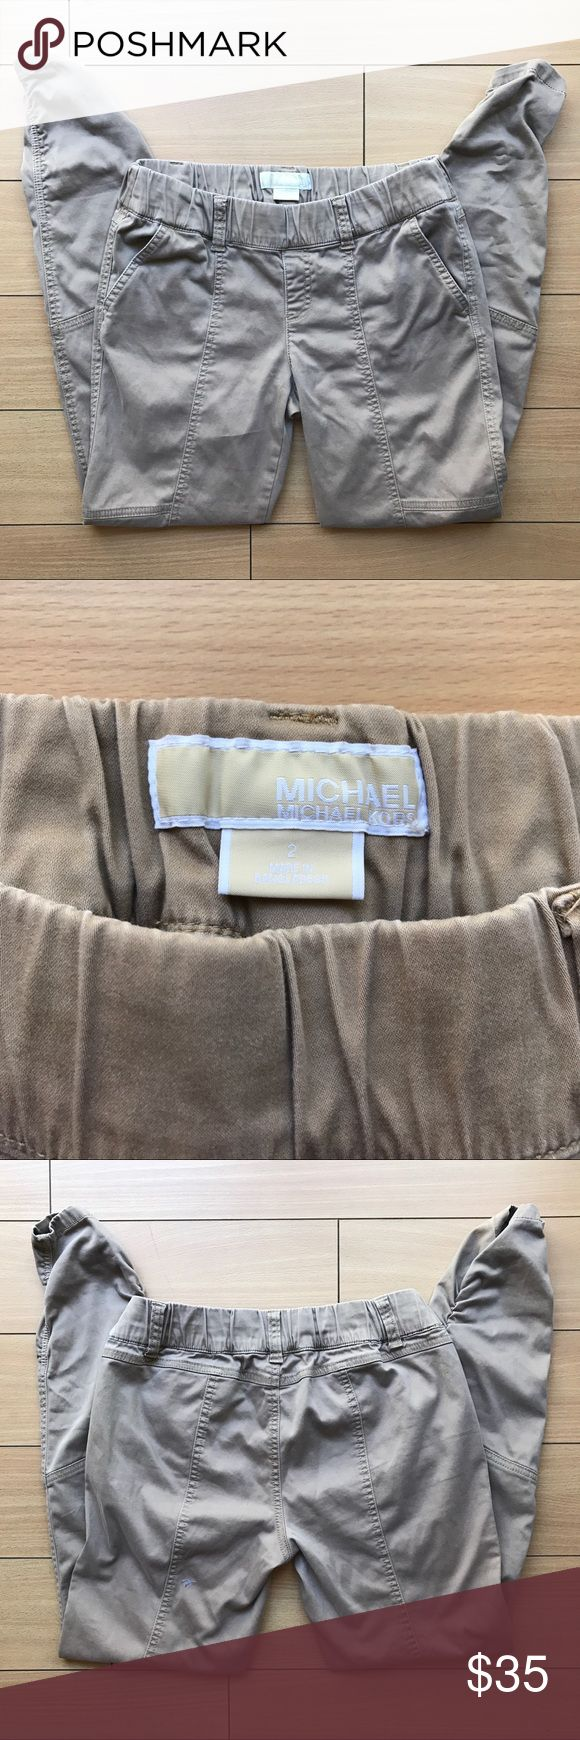 Michael Kors Ruched Ankle Slim Fit Joggers sz 2 Michael Kors joggers, size 2. Khaki in color. Elastic waistband with belt loops (does not come with belt). Ruched ankle detail. Slim fit style. EUC - no visible flaws. These are the perfect travel pants - casual and comfy!  Approx measurements laid flat:  waist: 14.5 front rise: 8.25 inseam: 27 Michael Kors Pants Track Pants & Joggers